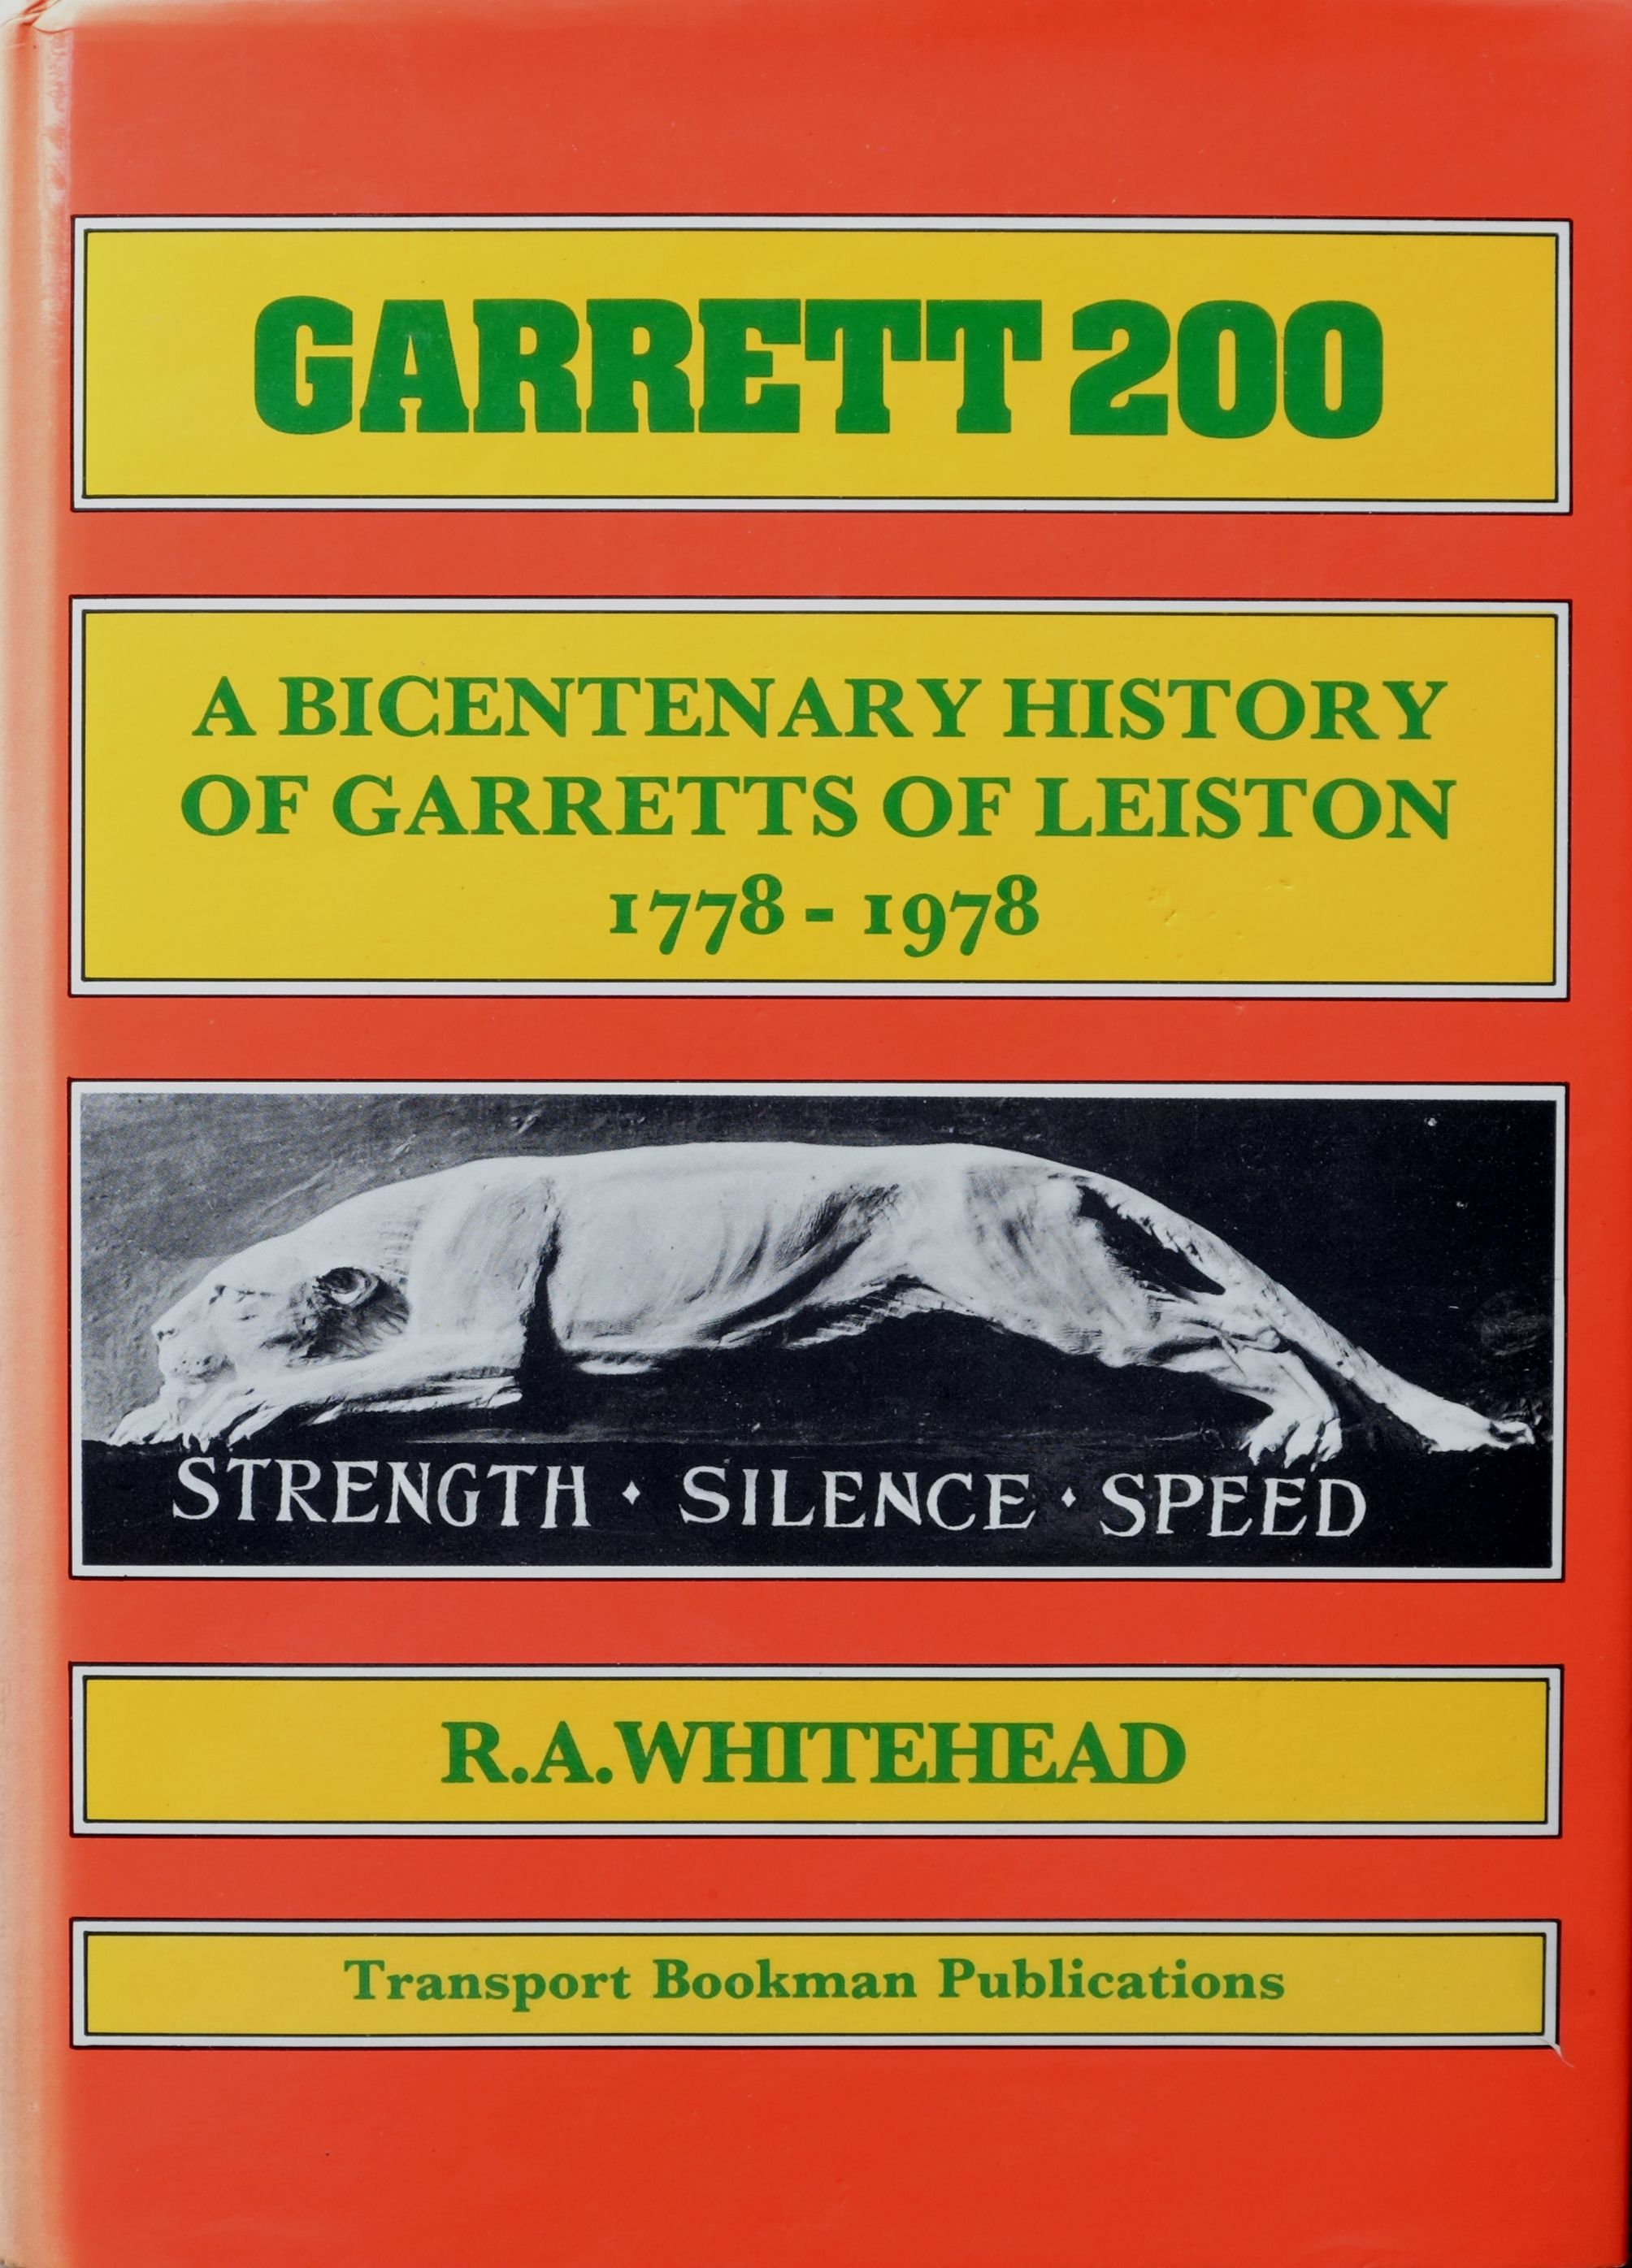 Image for Garrett 200 : A Bicentenary History of Garretts of Leiston 1778-1978